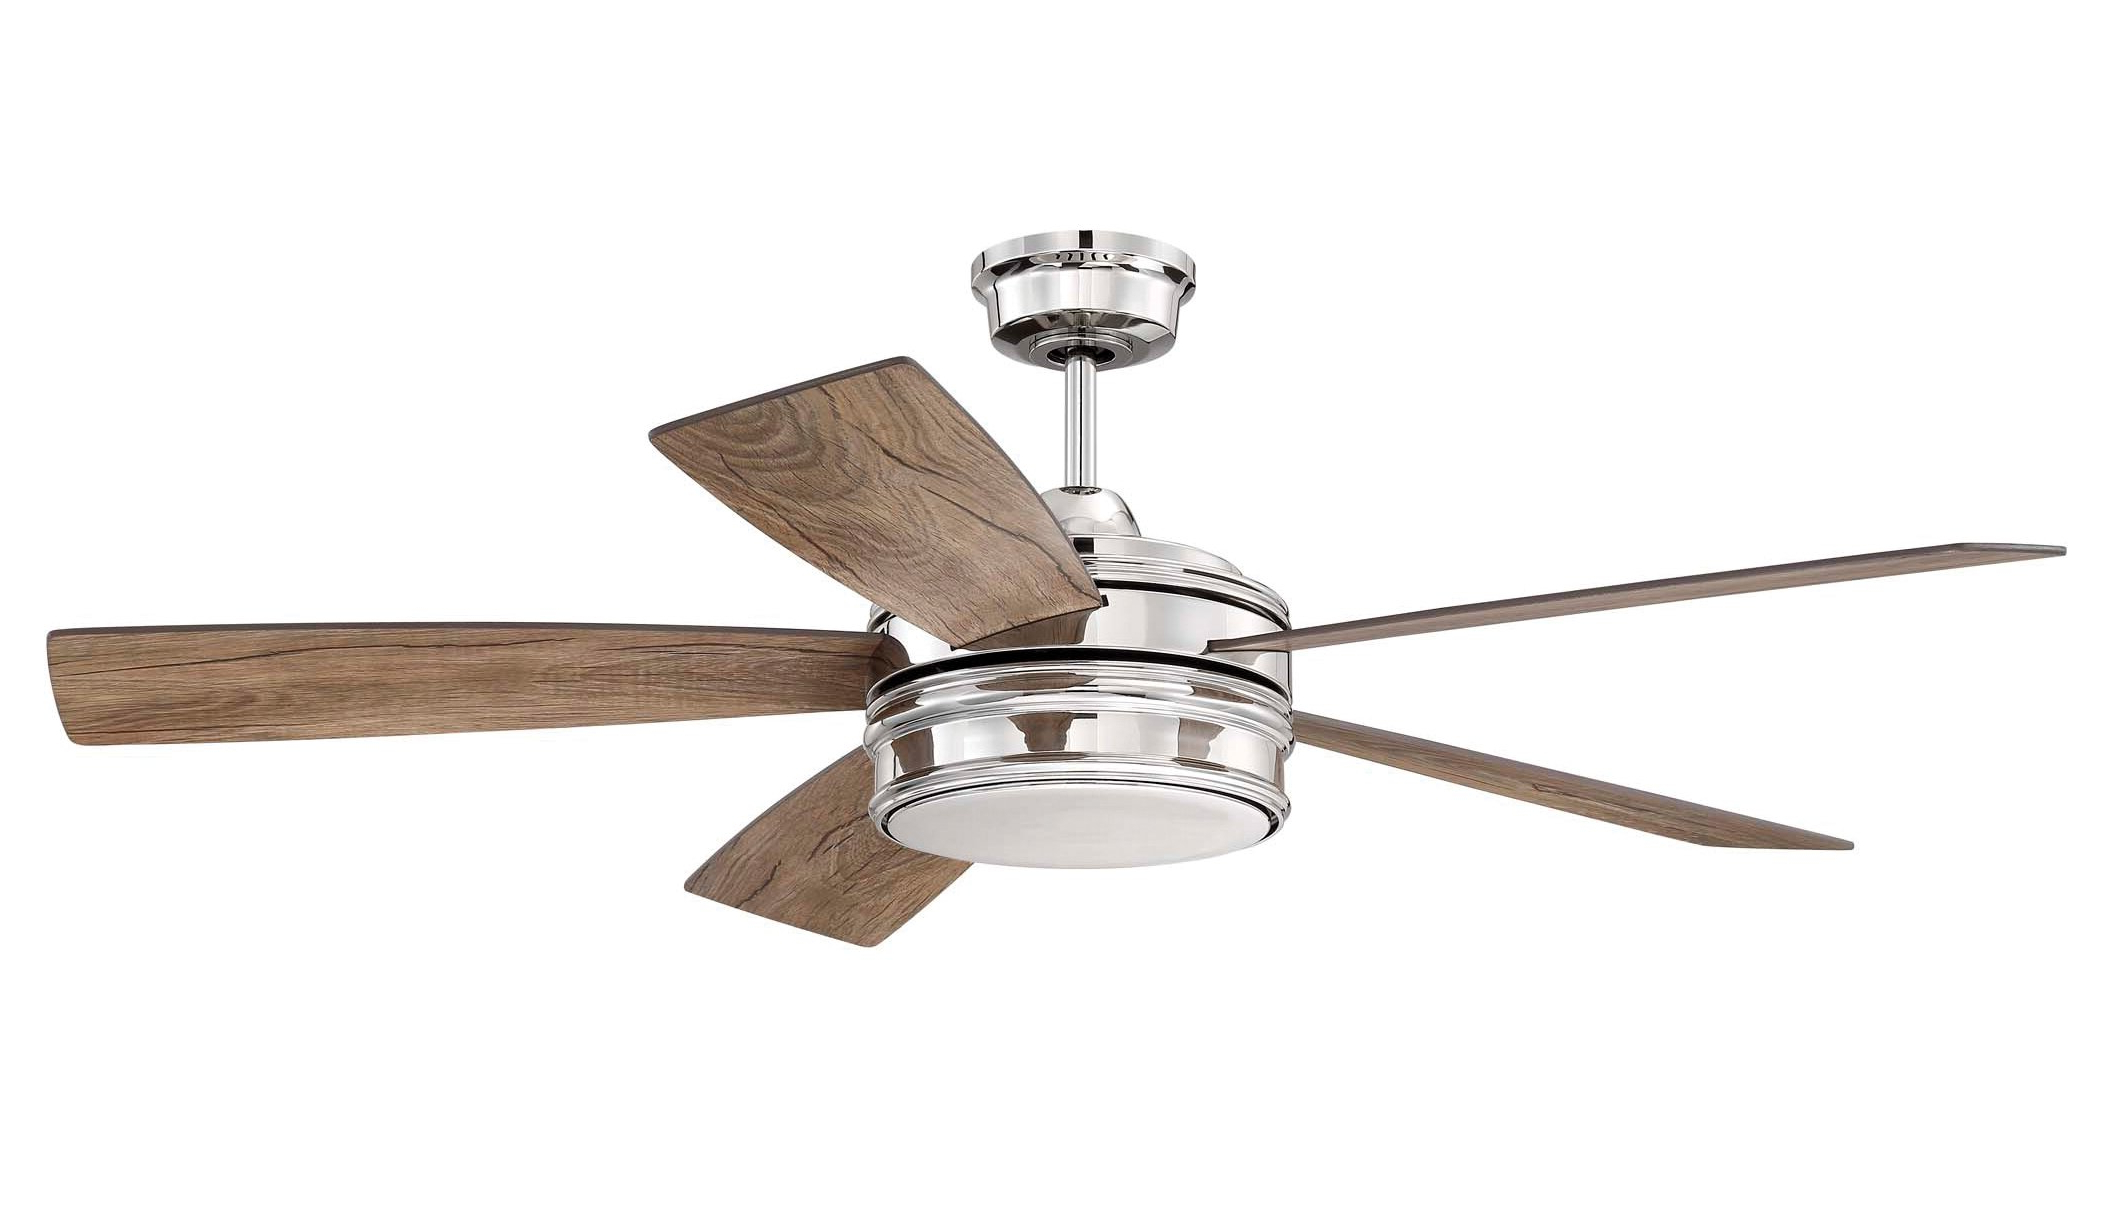 "Clybourn 5 Blade Ceiling Fans Inside Most Popular Greyleigh 52"" Winchcombe 5 Blade Led Ceiling Fan With Remote Light Kit (View 8 of 20)"